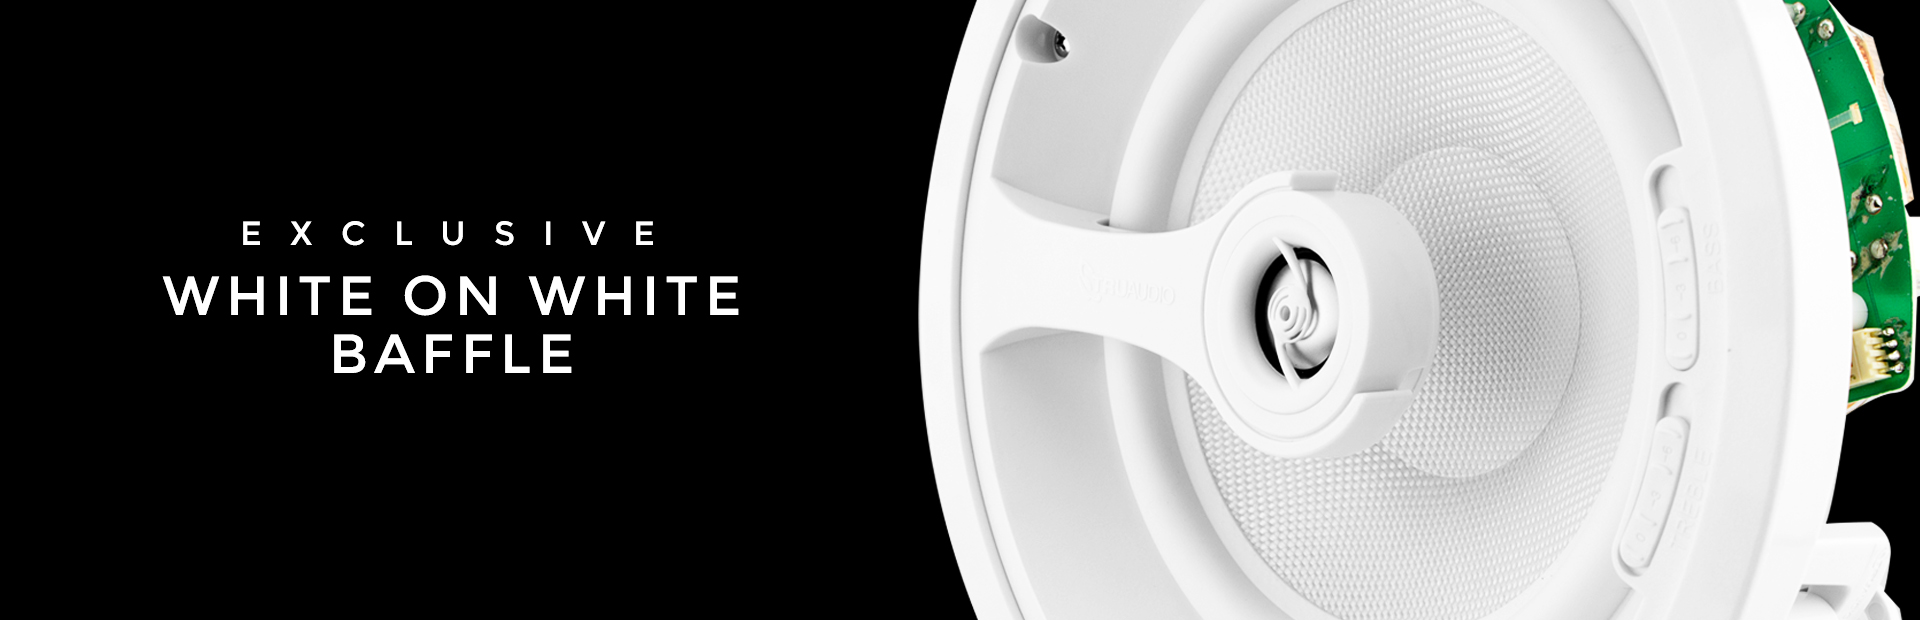 Exclusive White on White Baffles